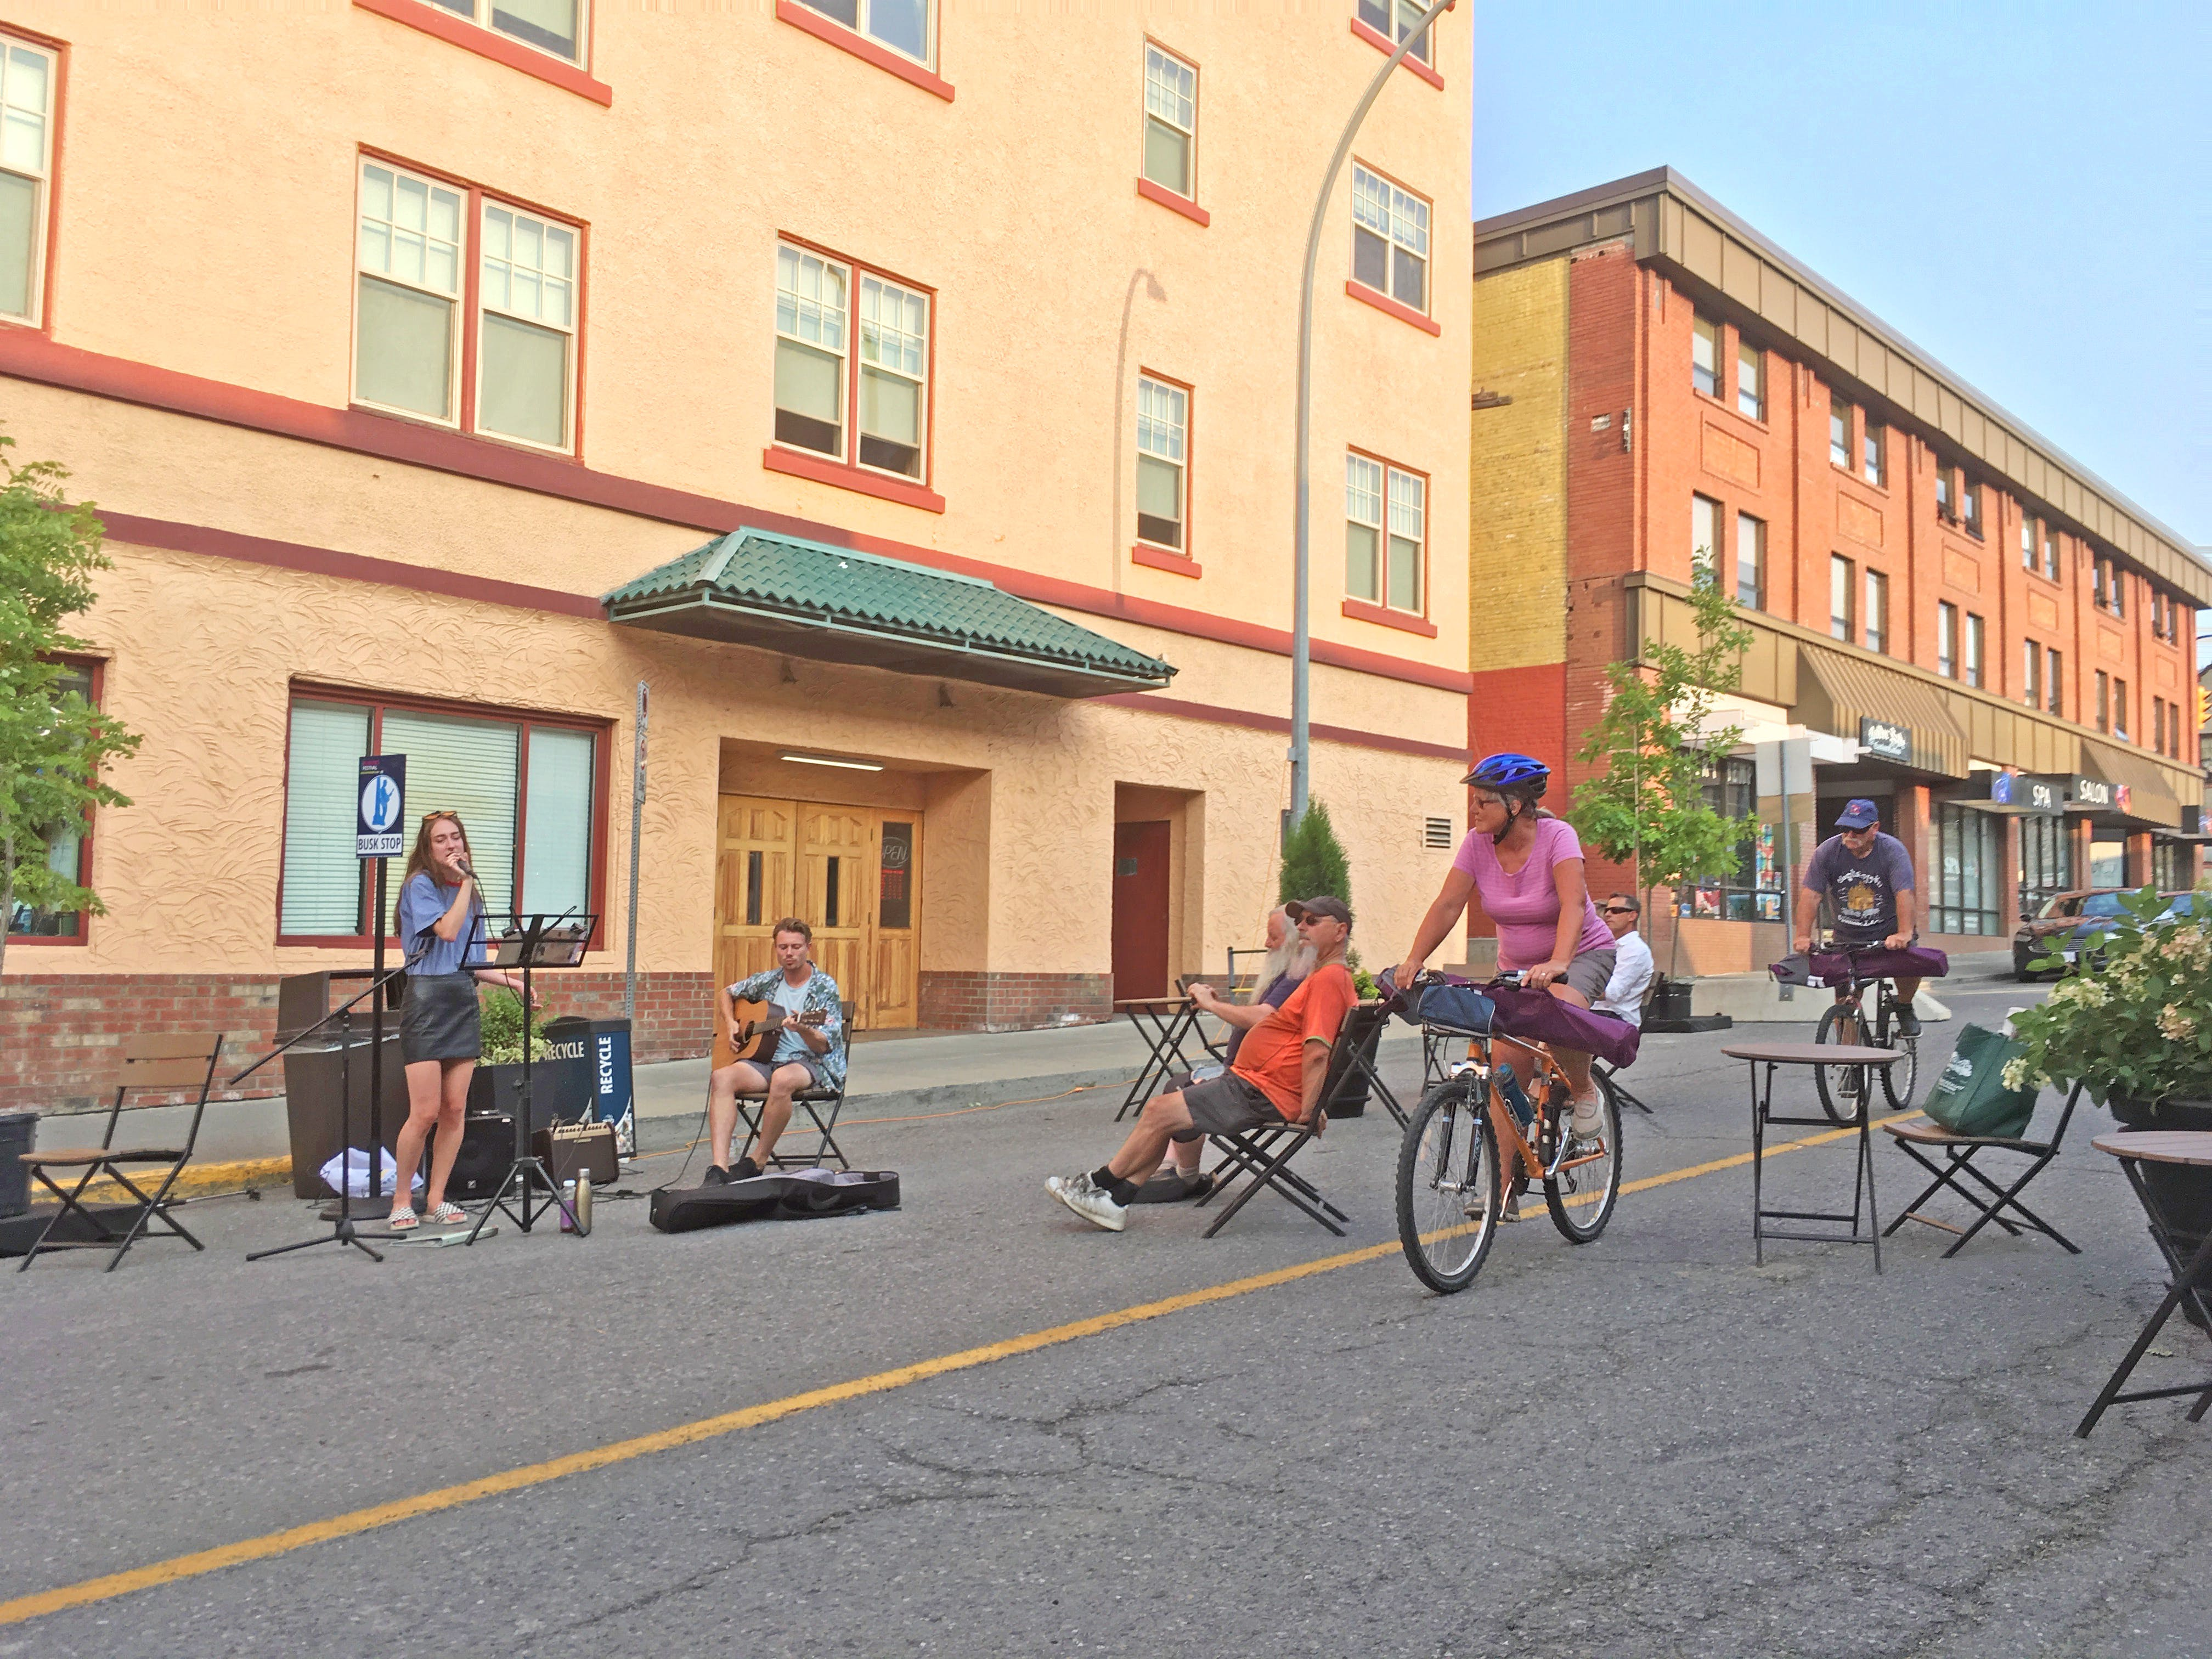 4th Ave Plaza Pilot Project • July 26 - Aug 12, 2018